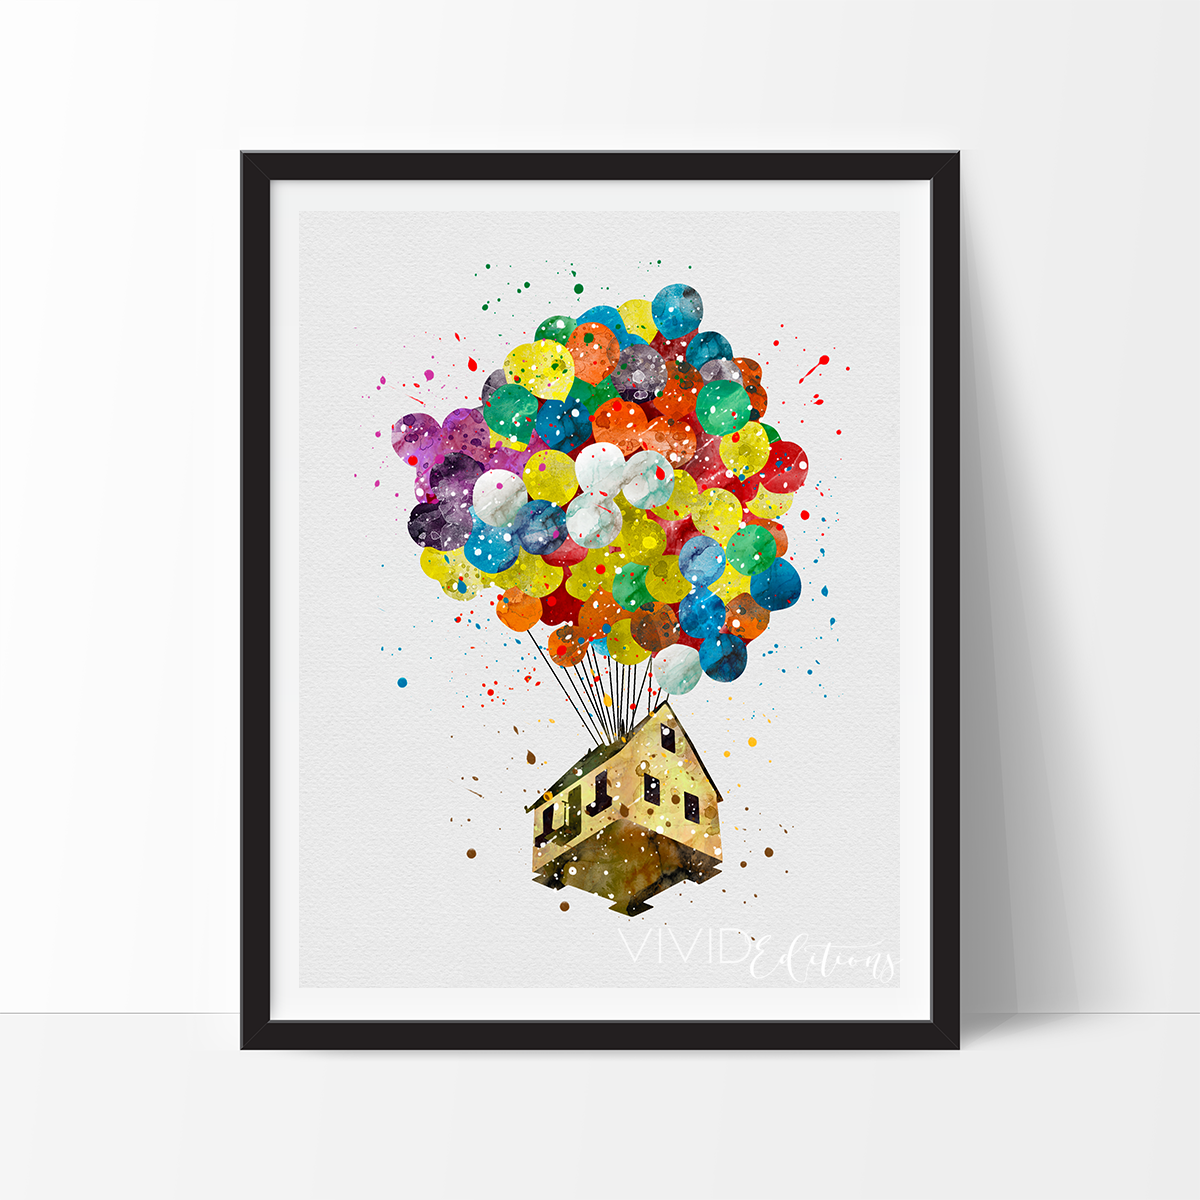 Up Balloon House Watercolor Art Print In 2021 Watercolor Art Prints Art Prints Watercolor Disney